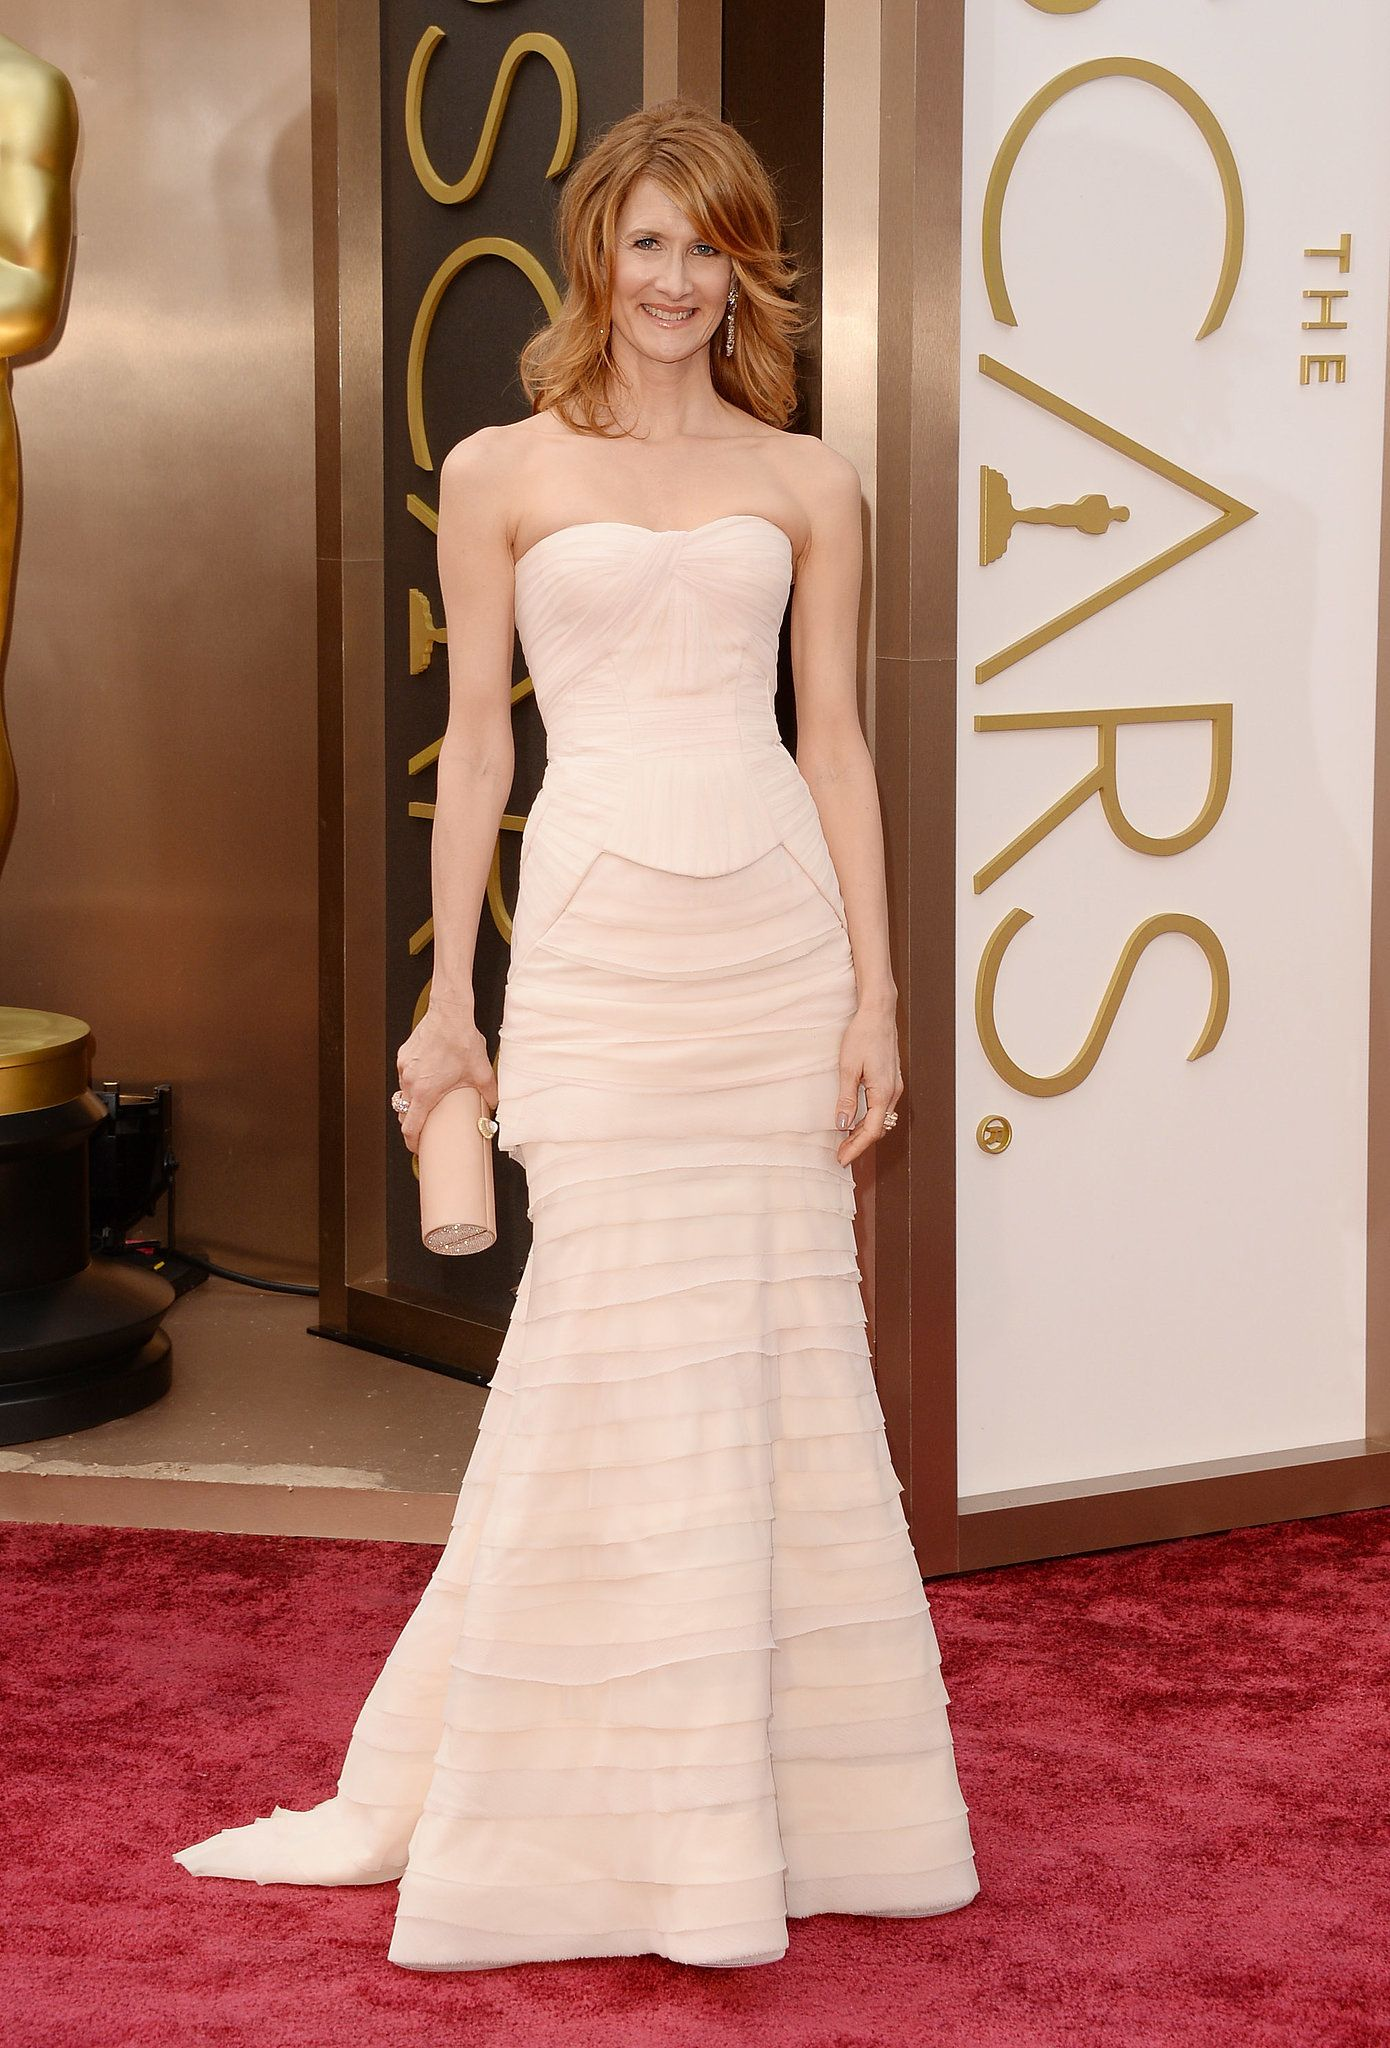 Laura dern at the oscars oscars gowns and red carpet